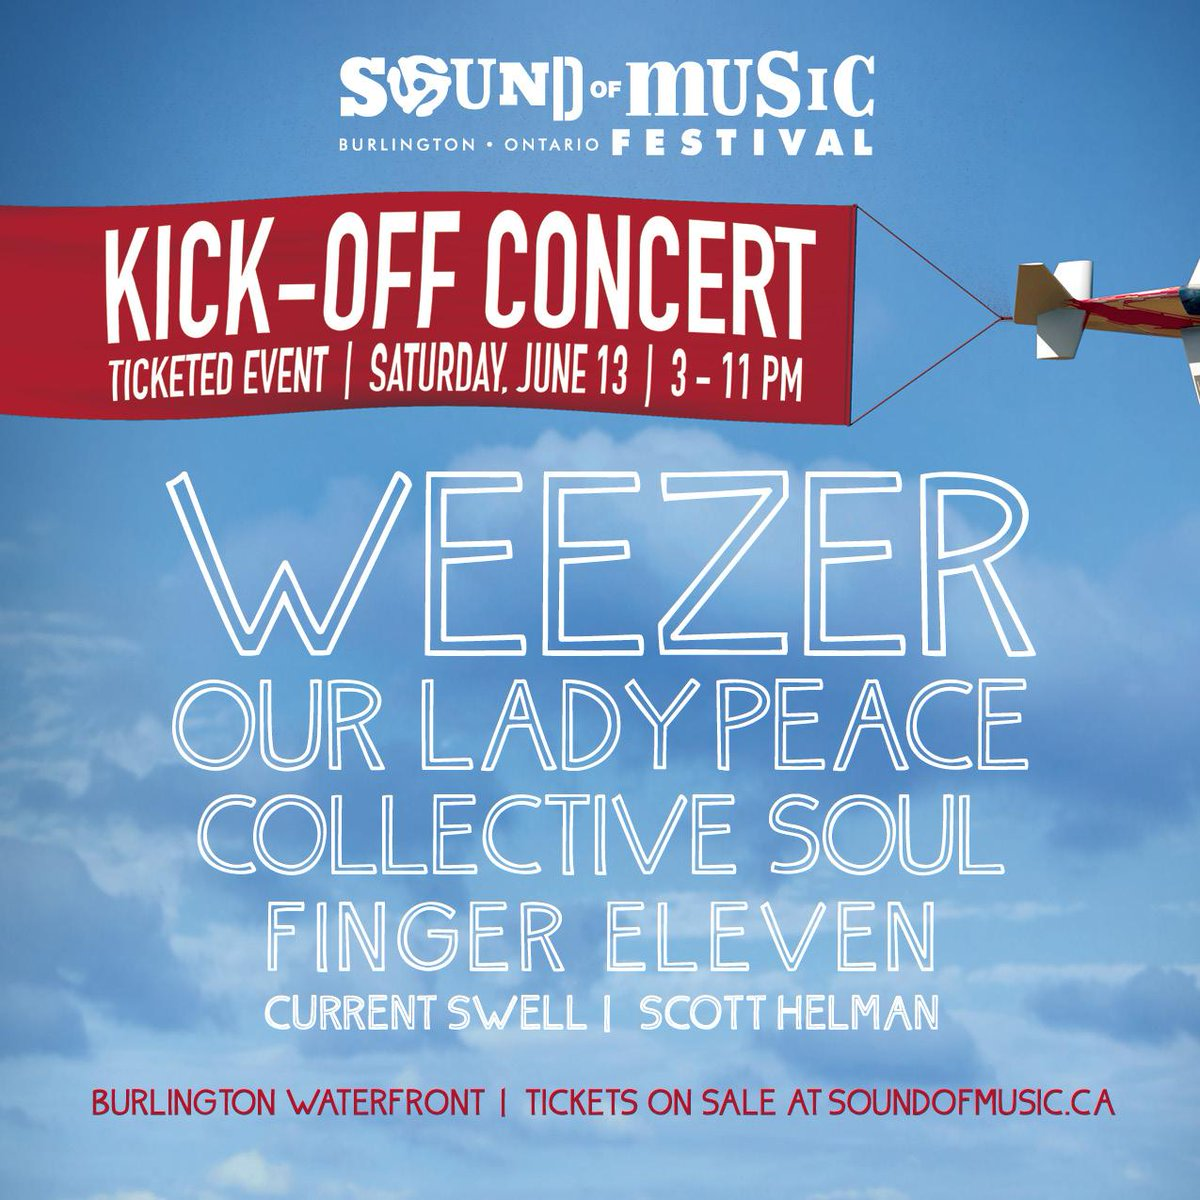 .@CollectiveSoul @ScottHelman Join @weezer @OurLadyPeace RT for a chance to win tix. Tix @ http://t.co/1AZikEObfd http://t.co/G5D6luRGqL